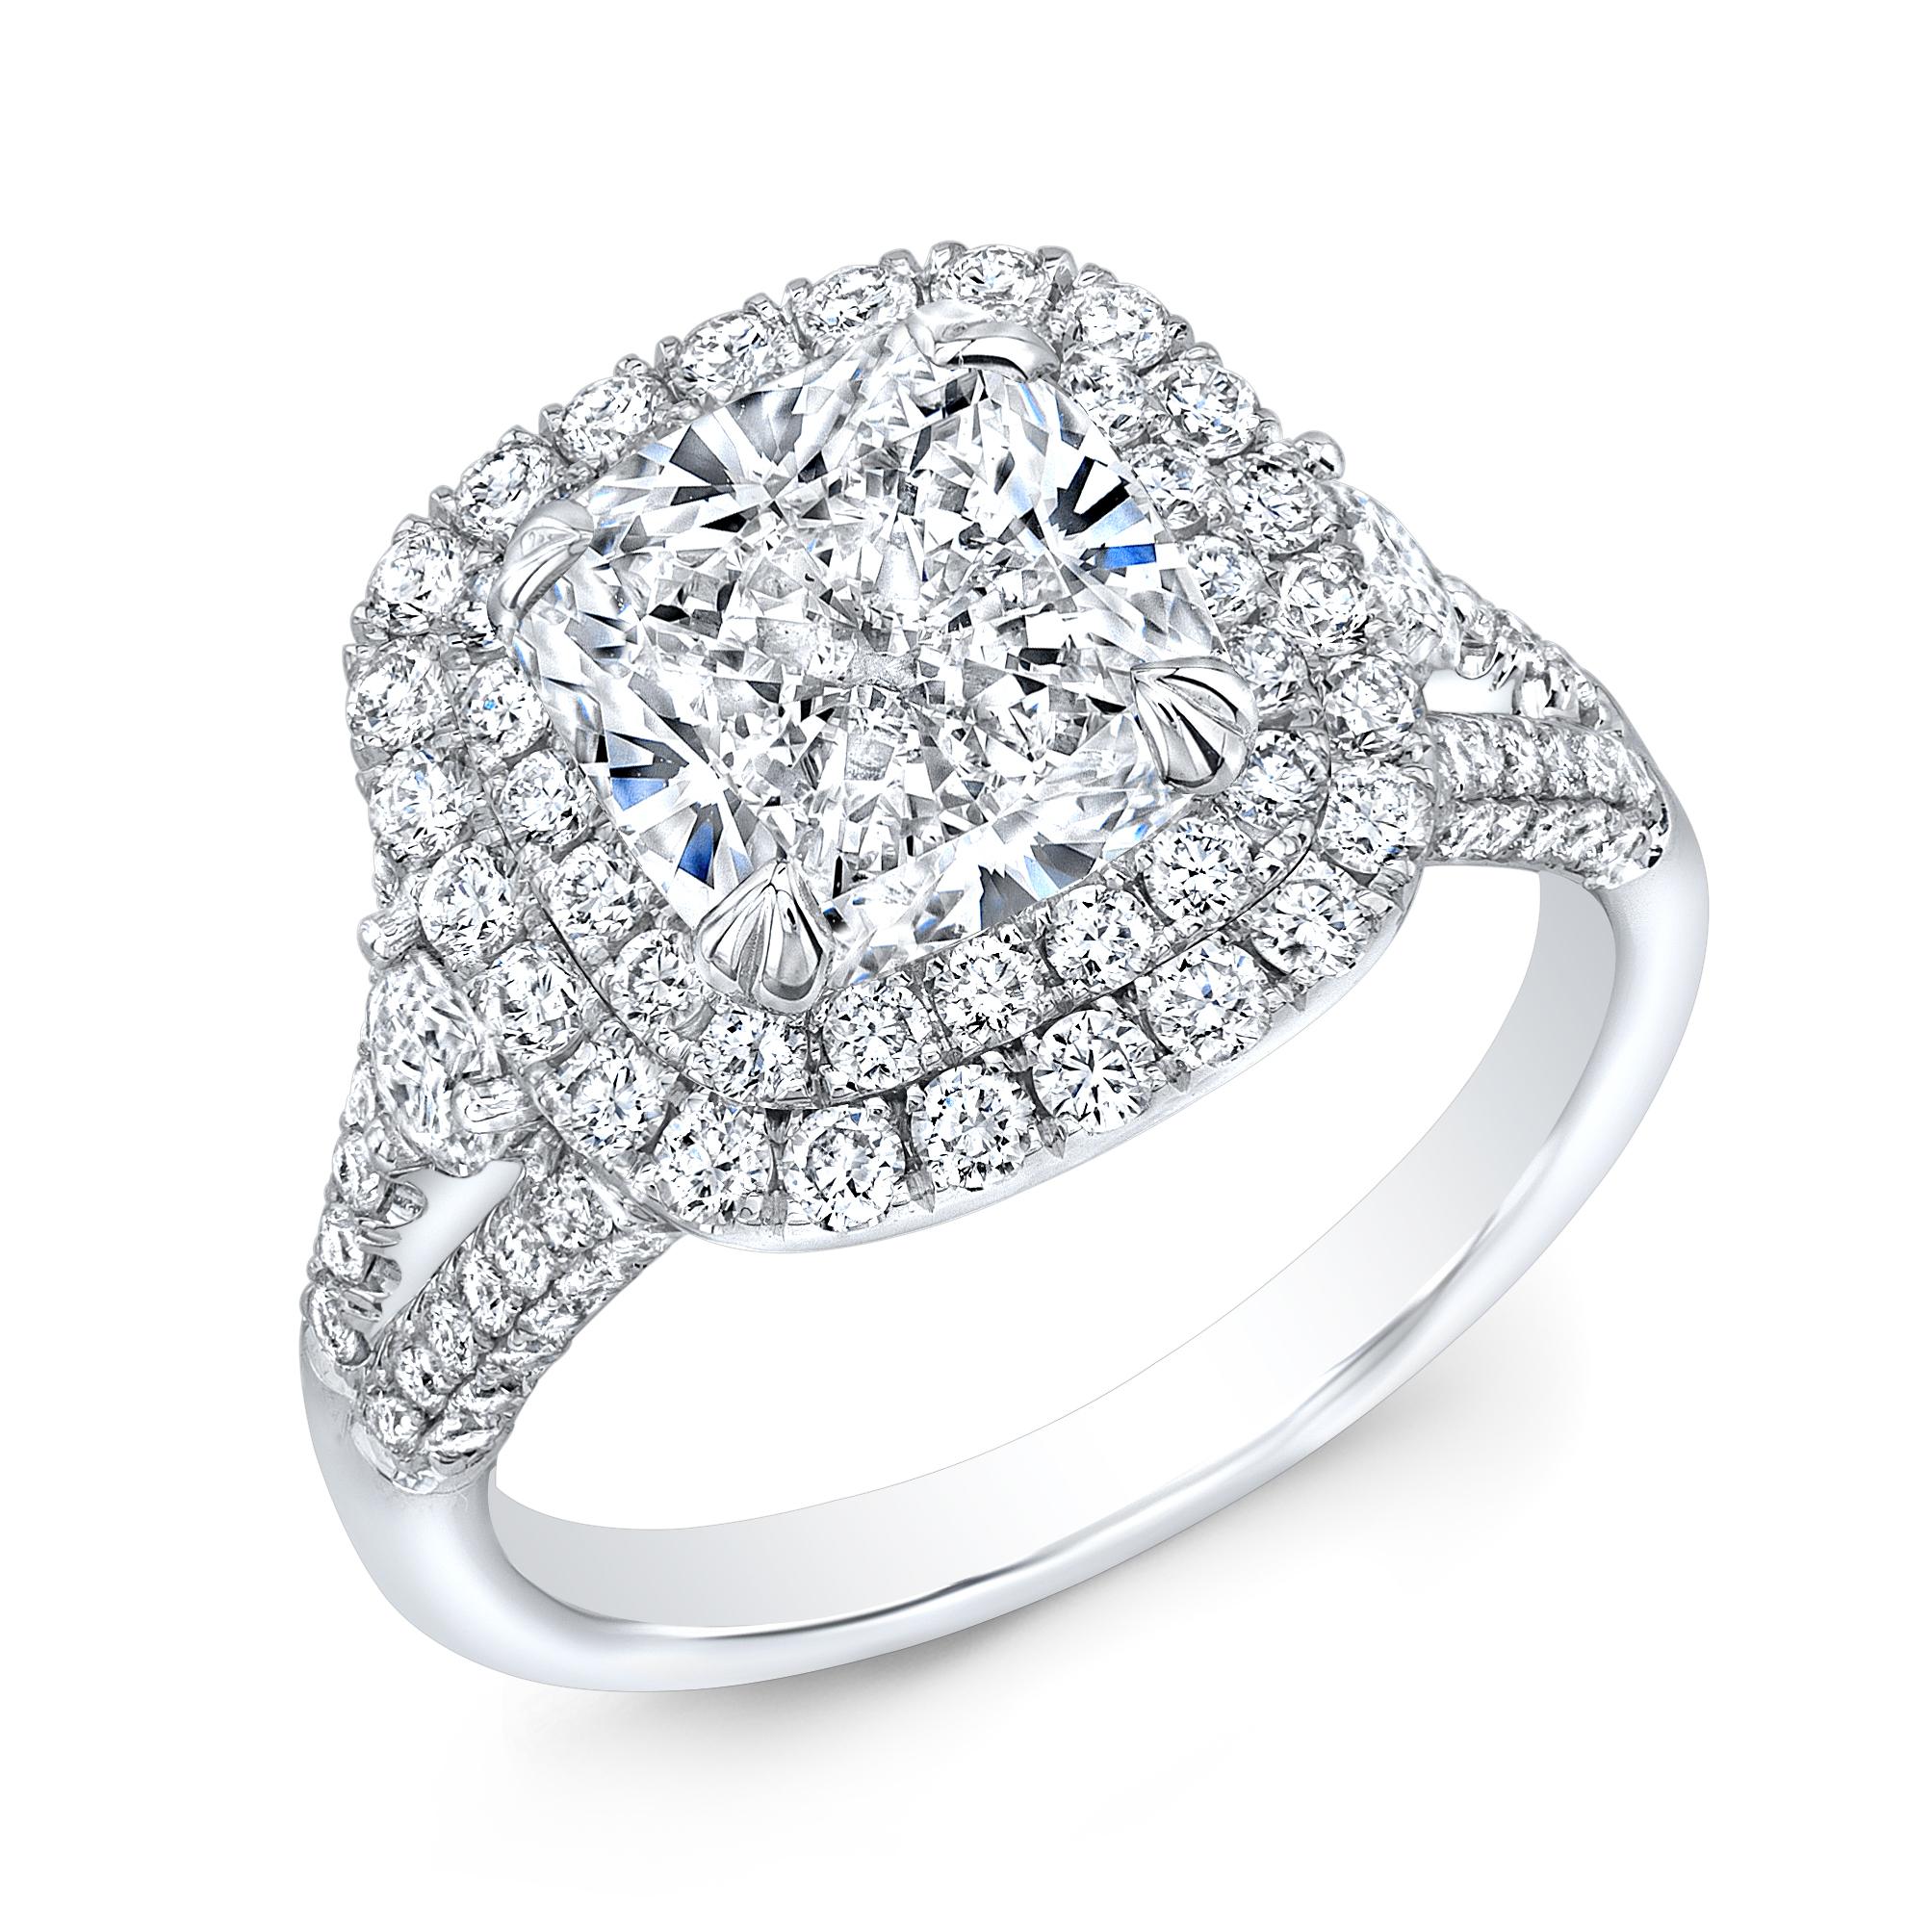 Double Halo Split Shank Micro Pave Diamond Engagement Ring